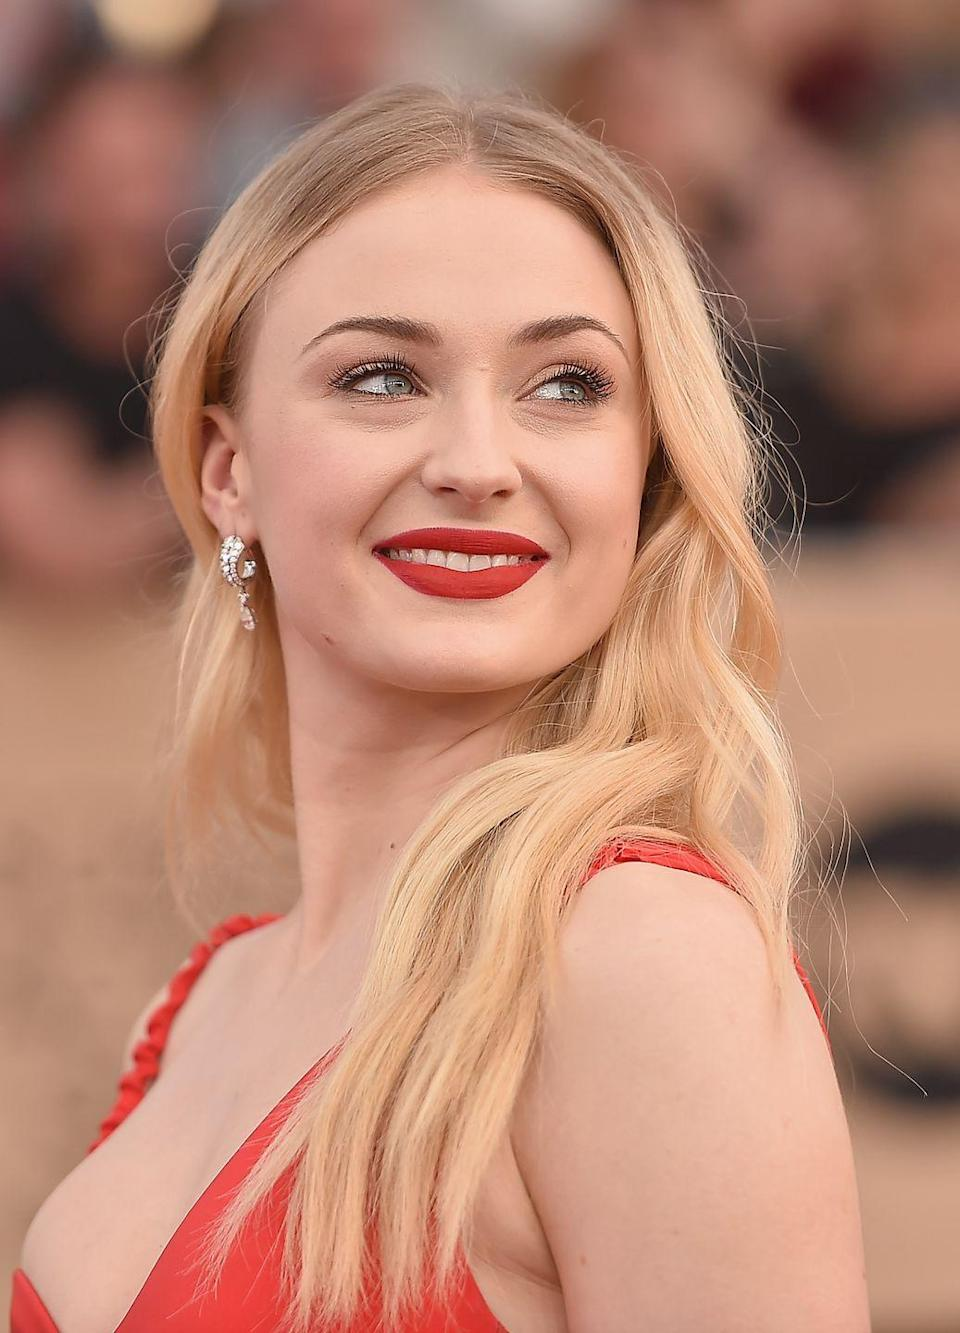 <p>Recently, Sophie Turner has been rocking super blonde hair, which has taken some getting used to for fans who were first introduced to her in <em>Game of Thrones. </em>But—surprise!—blonde is her natural color.</p>